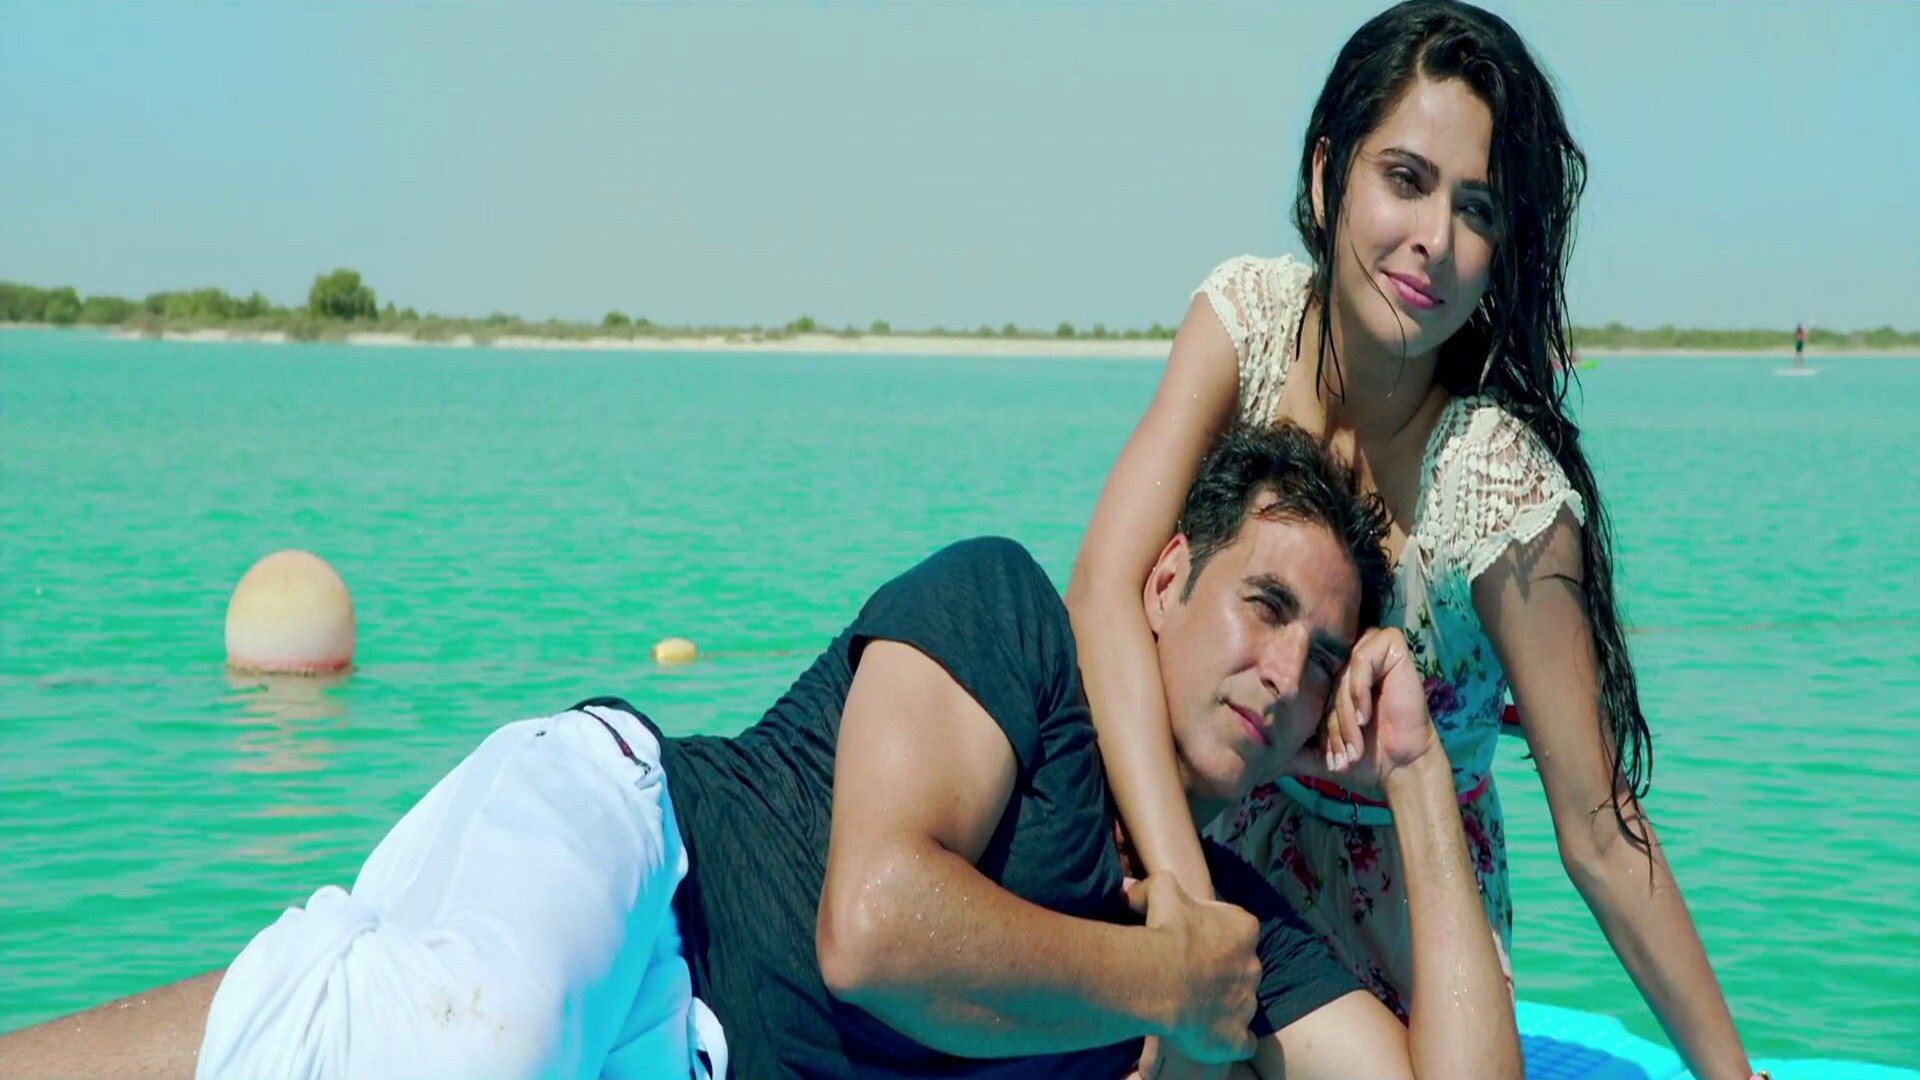 taapsee pannu and akshay kumar in bollywood movie baby hd wallpapers